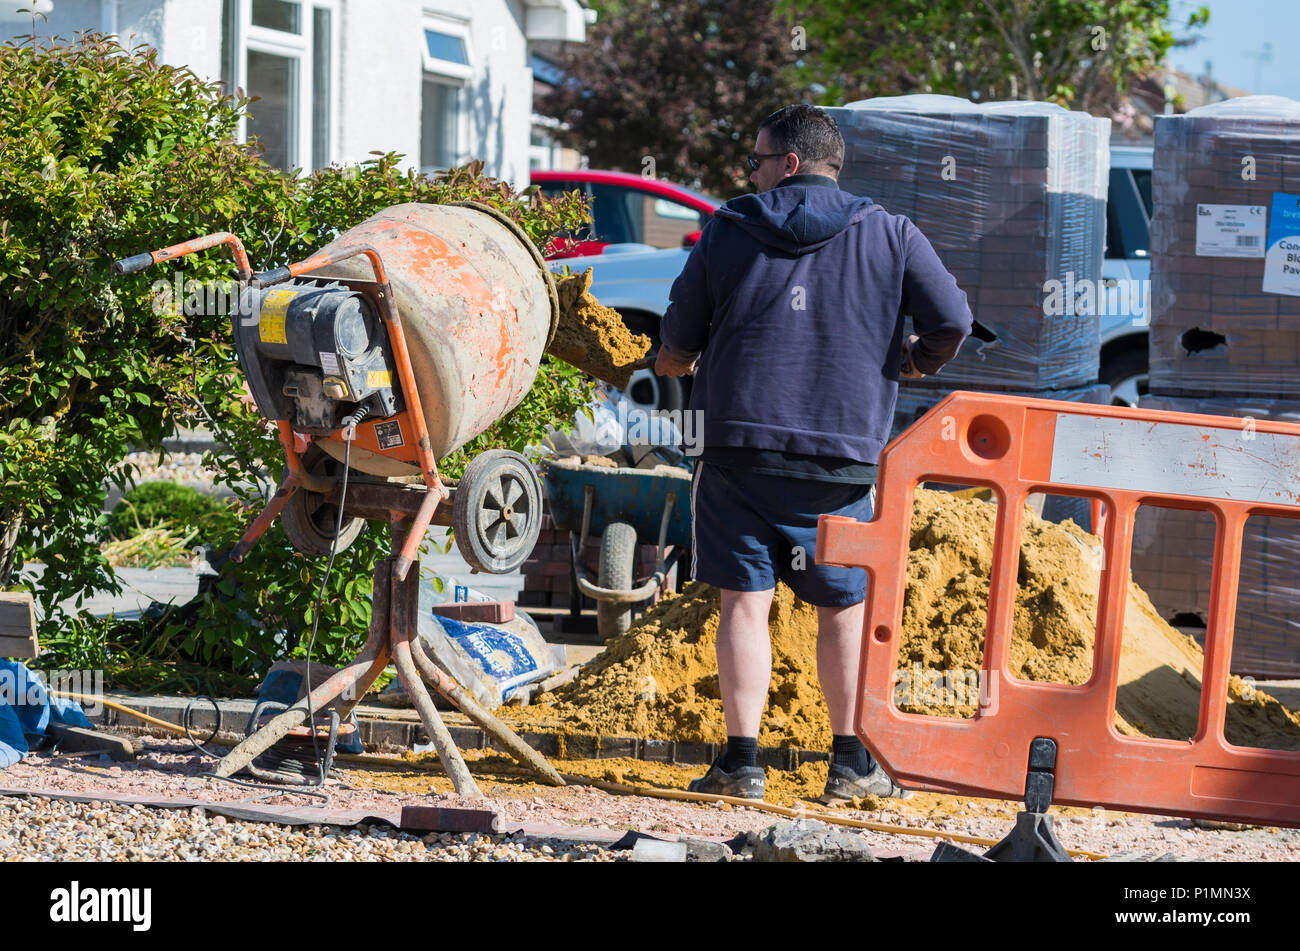 Man placing sand into a portable cement mixer as part of construction work on a residential property in the UK. - Stock Image